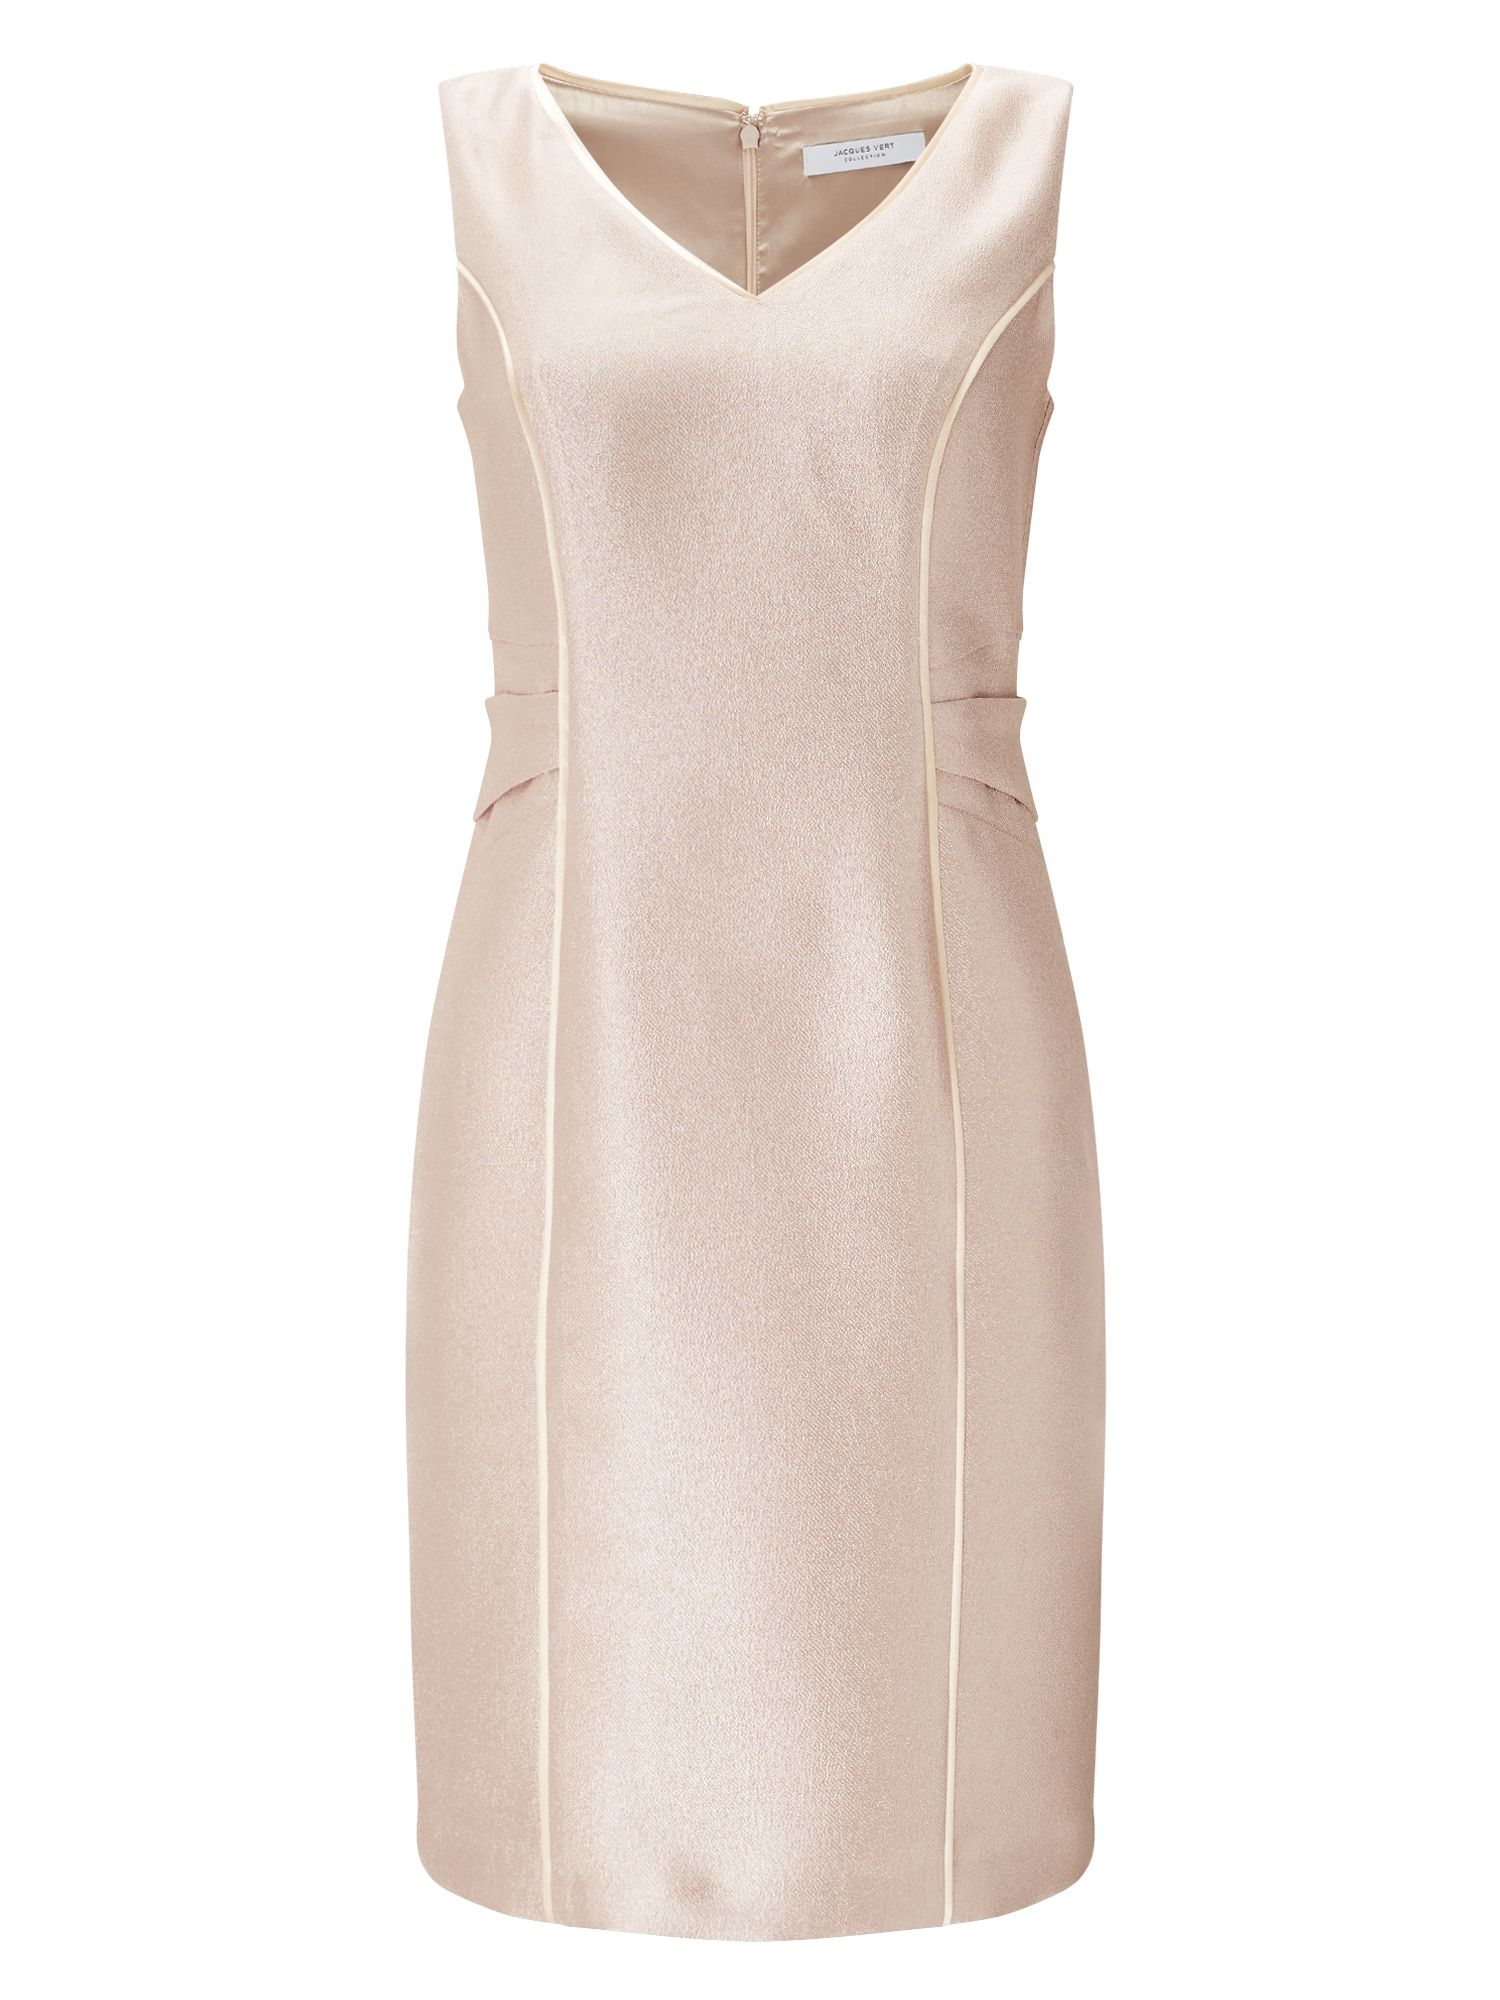 Jacques Vert Tara Textured Dress, Light Pink